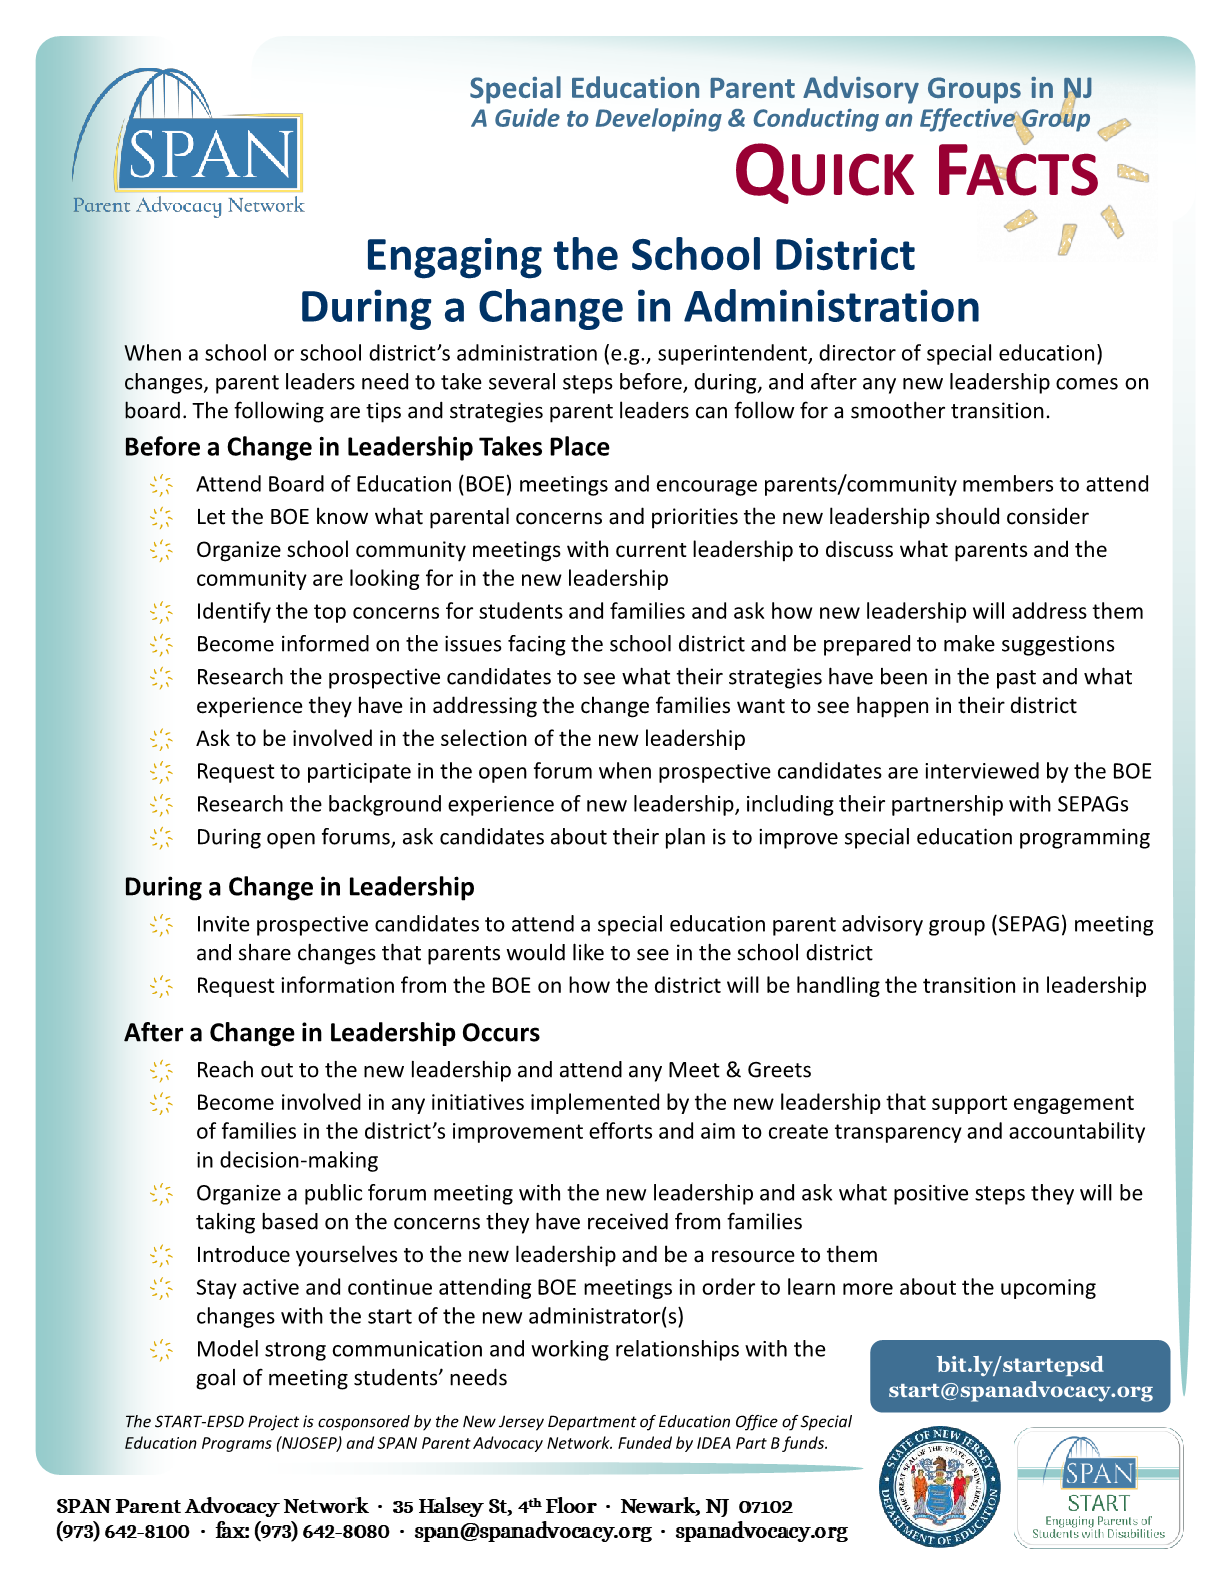 How SEPAGs Can Engaging the School District During a Change in Administration | Quick Guide